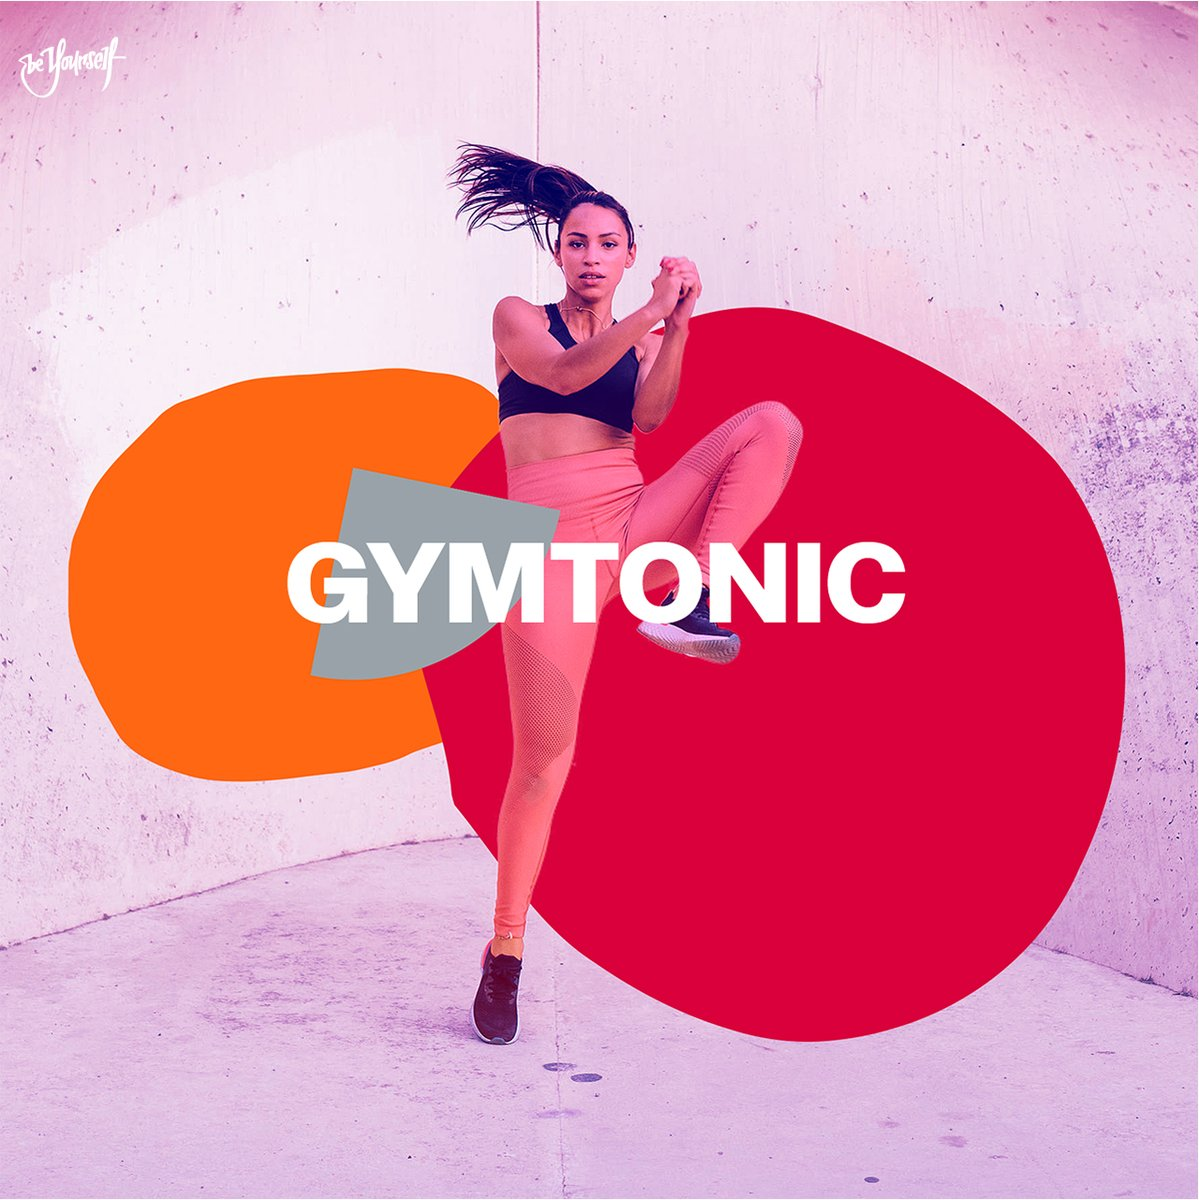 Your Sunday morning workout gets even better with our Gymtonic playlist featuring tracks by @BakermatMusic, @melsenmusic, @MelissaSneekes, @Peterluts and many more!   🏋️‍♂️   #workout #beastmode #workoutplaylist